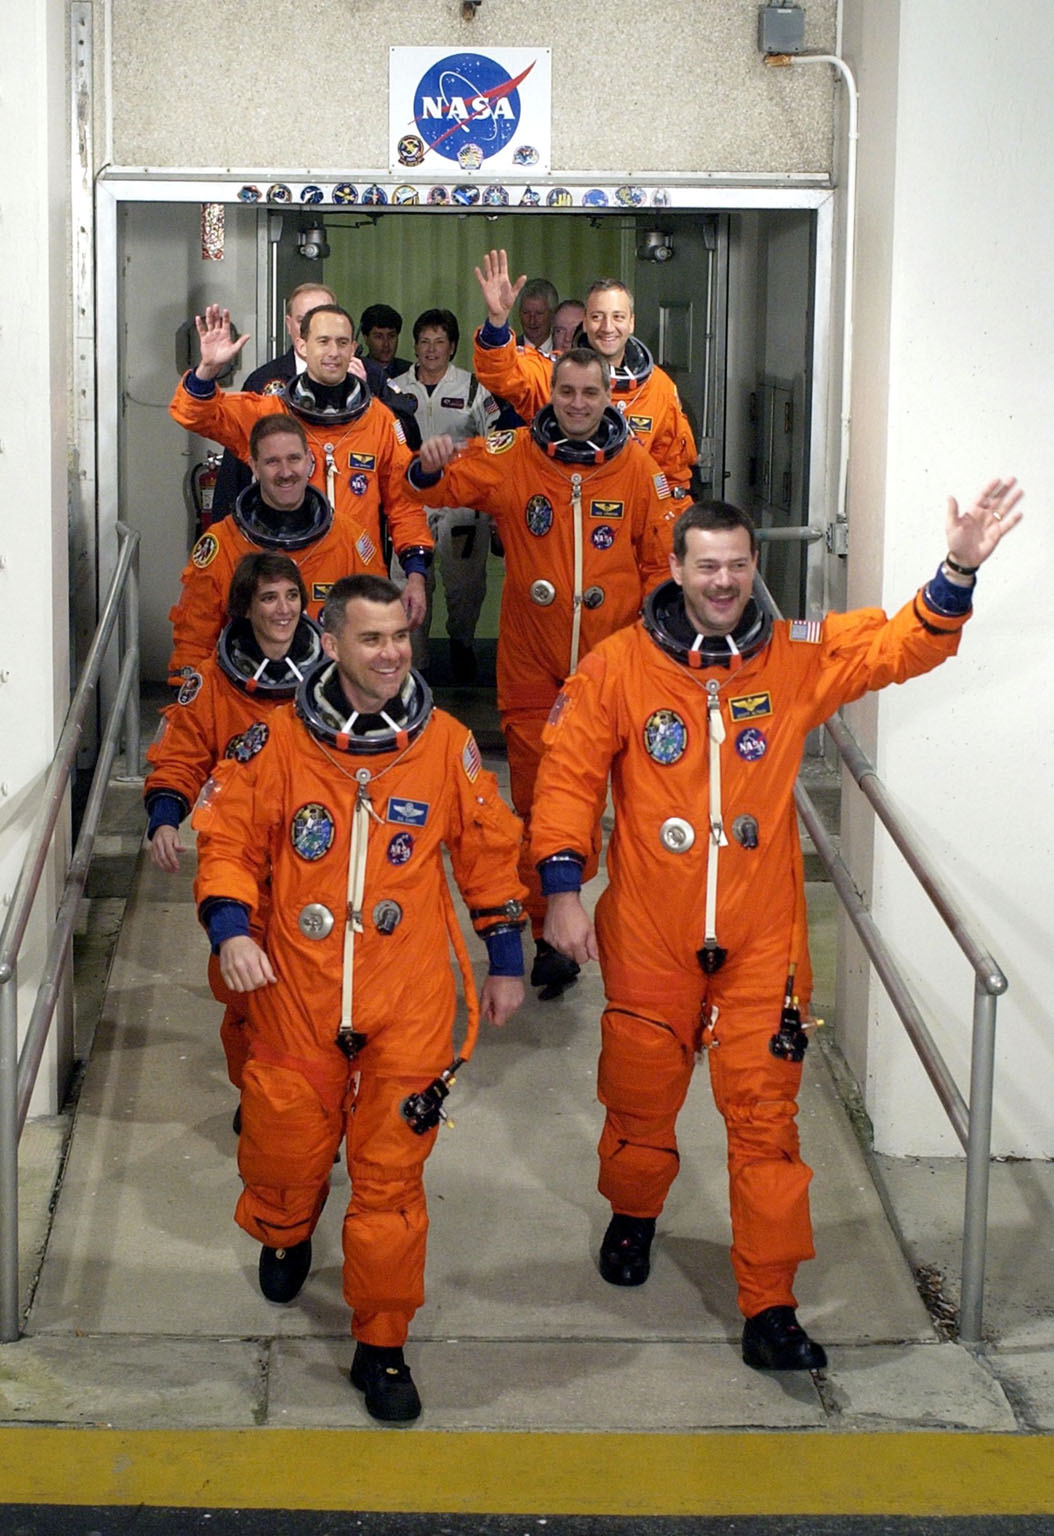 KENNEDY SPACE CENTER, Fla. - The STS-109 crew members wave to onlookers as they stride out from the Operations and Checkout Building, eager to get to the launch pad. They are, from front to back, Pilot Duane G. Carey (left) and Commander Scott D. Altman (right); Mission Specialist Nance Jane Currie; Payload Commander John M. Grunsfeld (left) and Richard M. Linnehan (right); James H. Newman (left) and Michael J. Massimino (right). On mission STS-109, the crew will capture the Hubble Space Telescope using the Shuttle's robotic arm and secure it on a workstand in Columbia's payload bay. Four mission specialists will perform five scheduled spacewalks to complete system upgrades to the telescope. More durable solar arrays, a large gyroscopic assembly to help point the telescope properly, a new telescope power control unit, and a cooling system to restore the use of a key infrared camera and spectrometer unit, which has been dormant since 1999, will all be installed. In addition, the telescope's view of the Universe will be improved with the addition of the Advanced Camera for Surveys (ACS), which replaces the Faint Object Camera, the last of Hubble's original instruments. Mission STS-109 is the 27th flight of the orbiter Columbia and the 108th flight overall in NASA's Space Shuttle program. After the 11-day mission, STS-109 is scheduled to land about 4:35 a.m. EST on March 12. [Photo by Scott Andrews